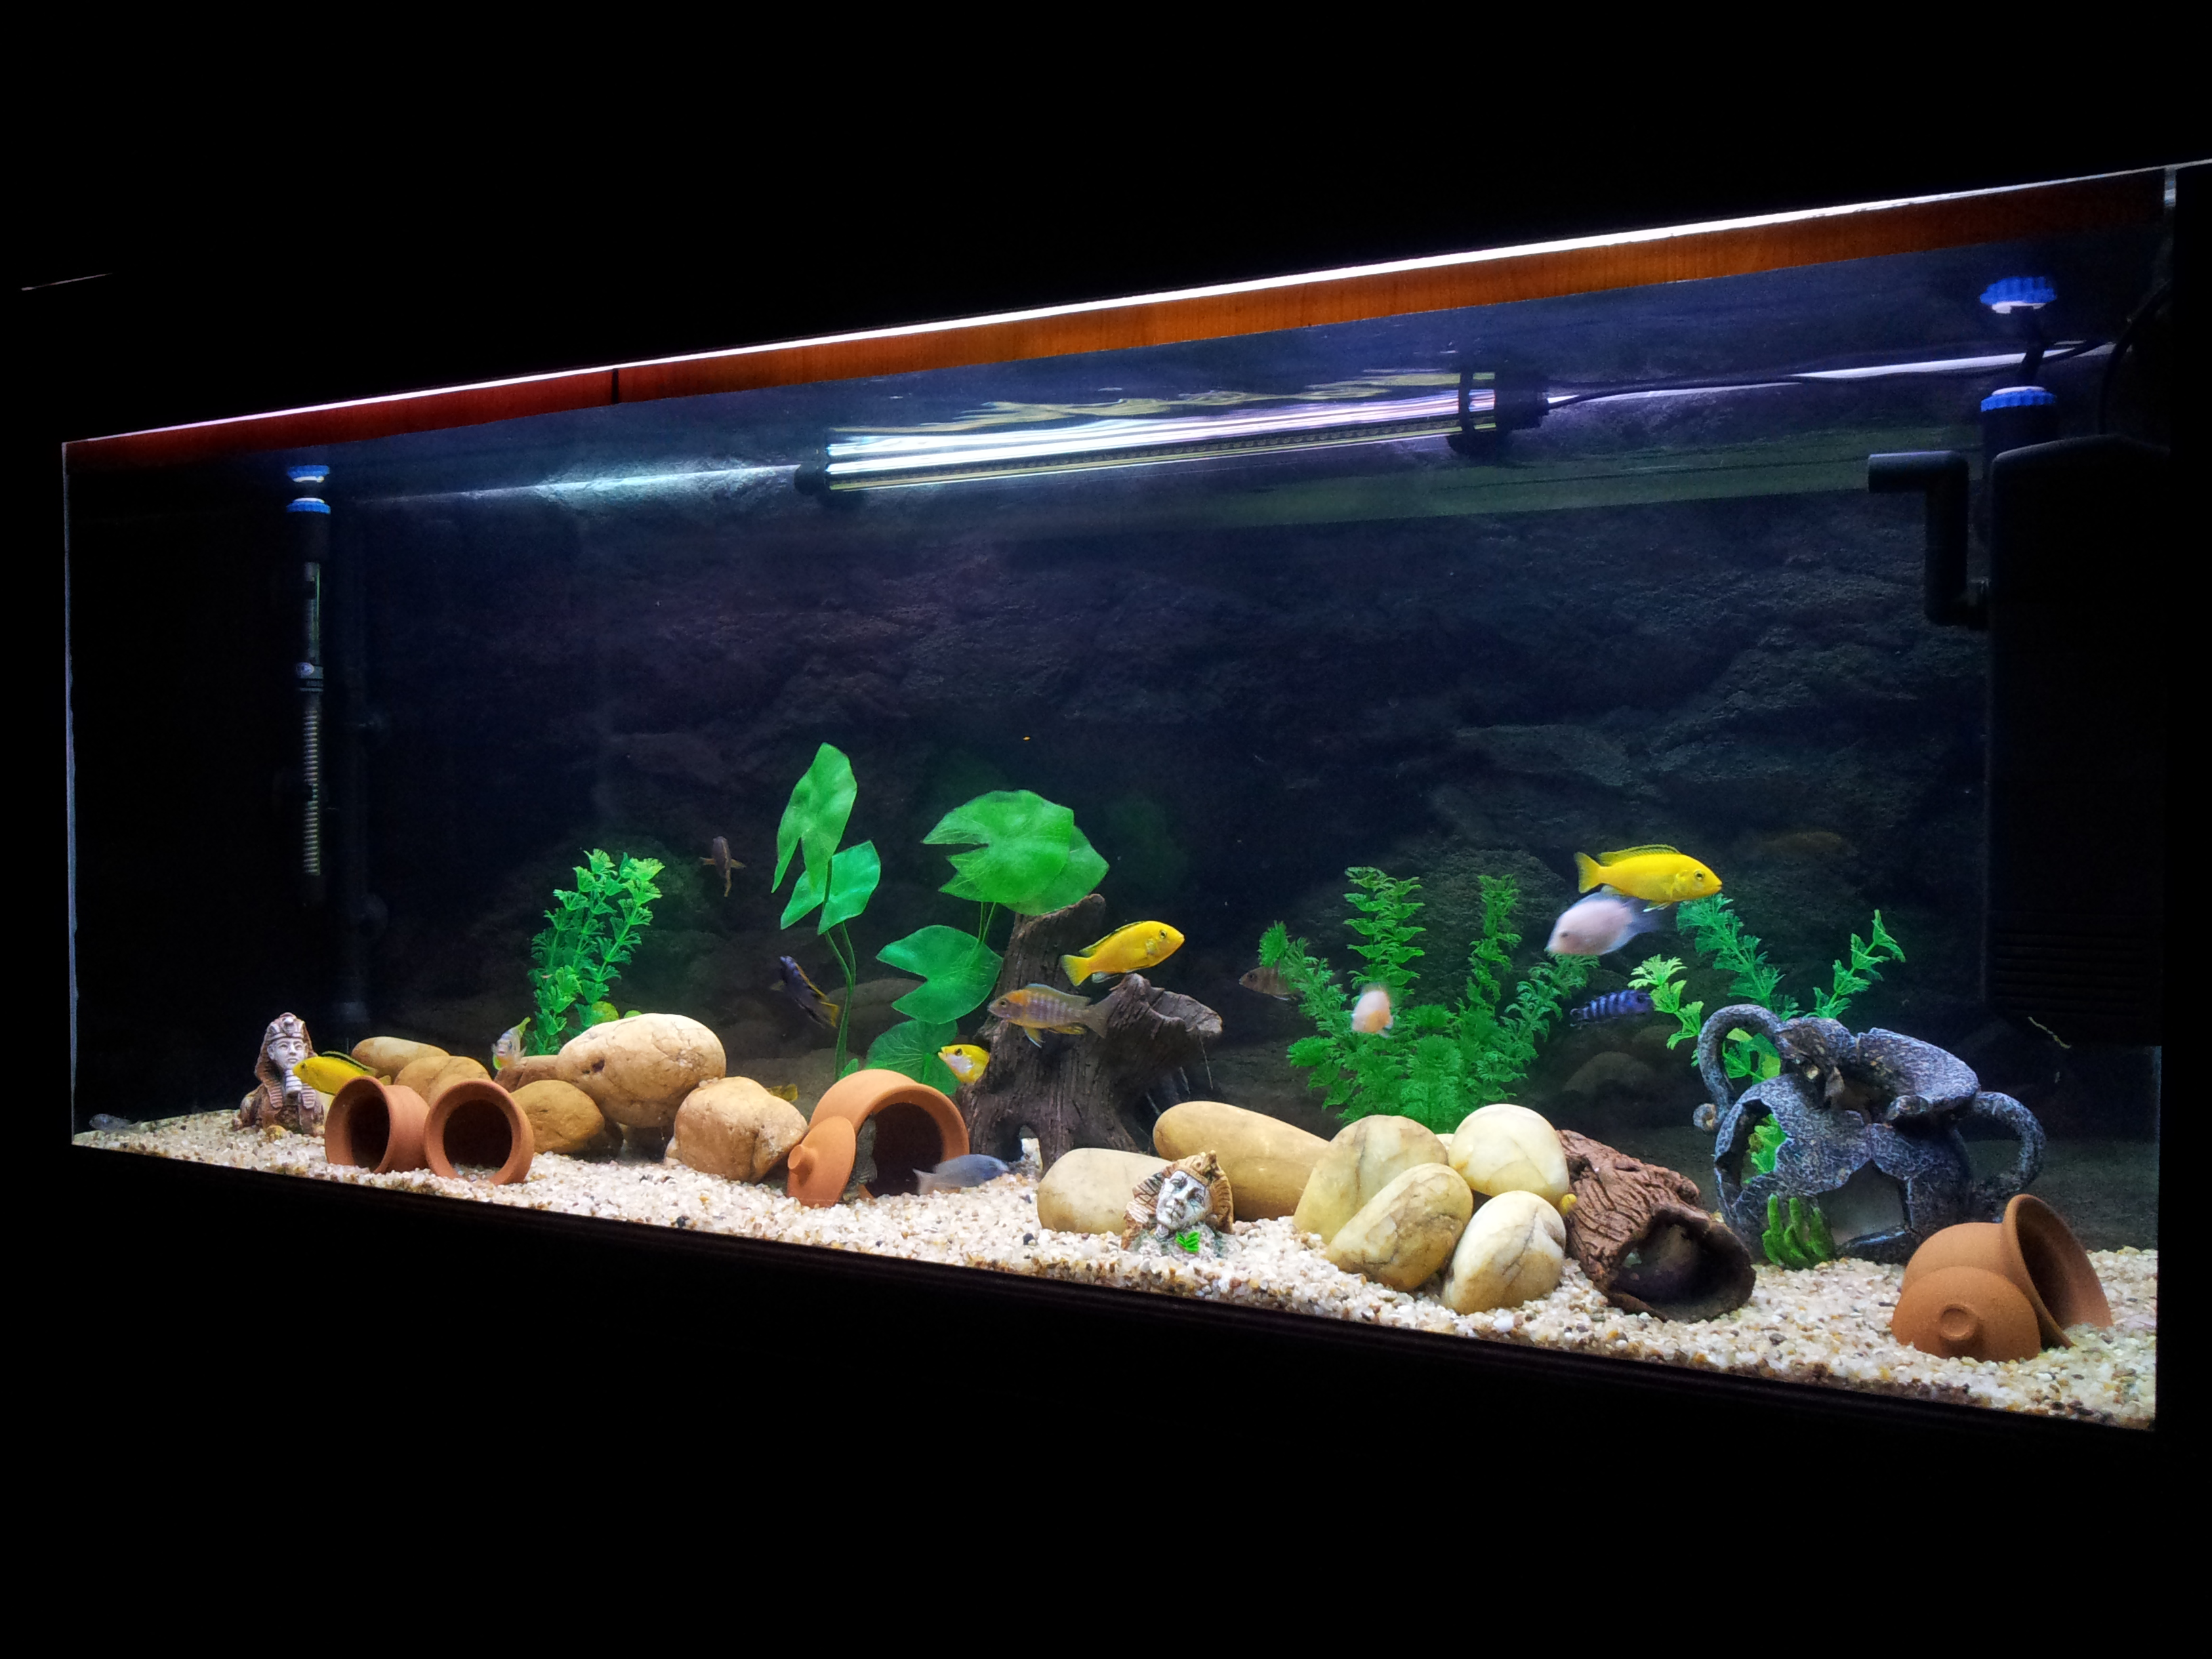 tank examples my aquarium 240 liter. Black Bedroom Furniture Sets. Home Design Ideas